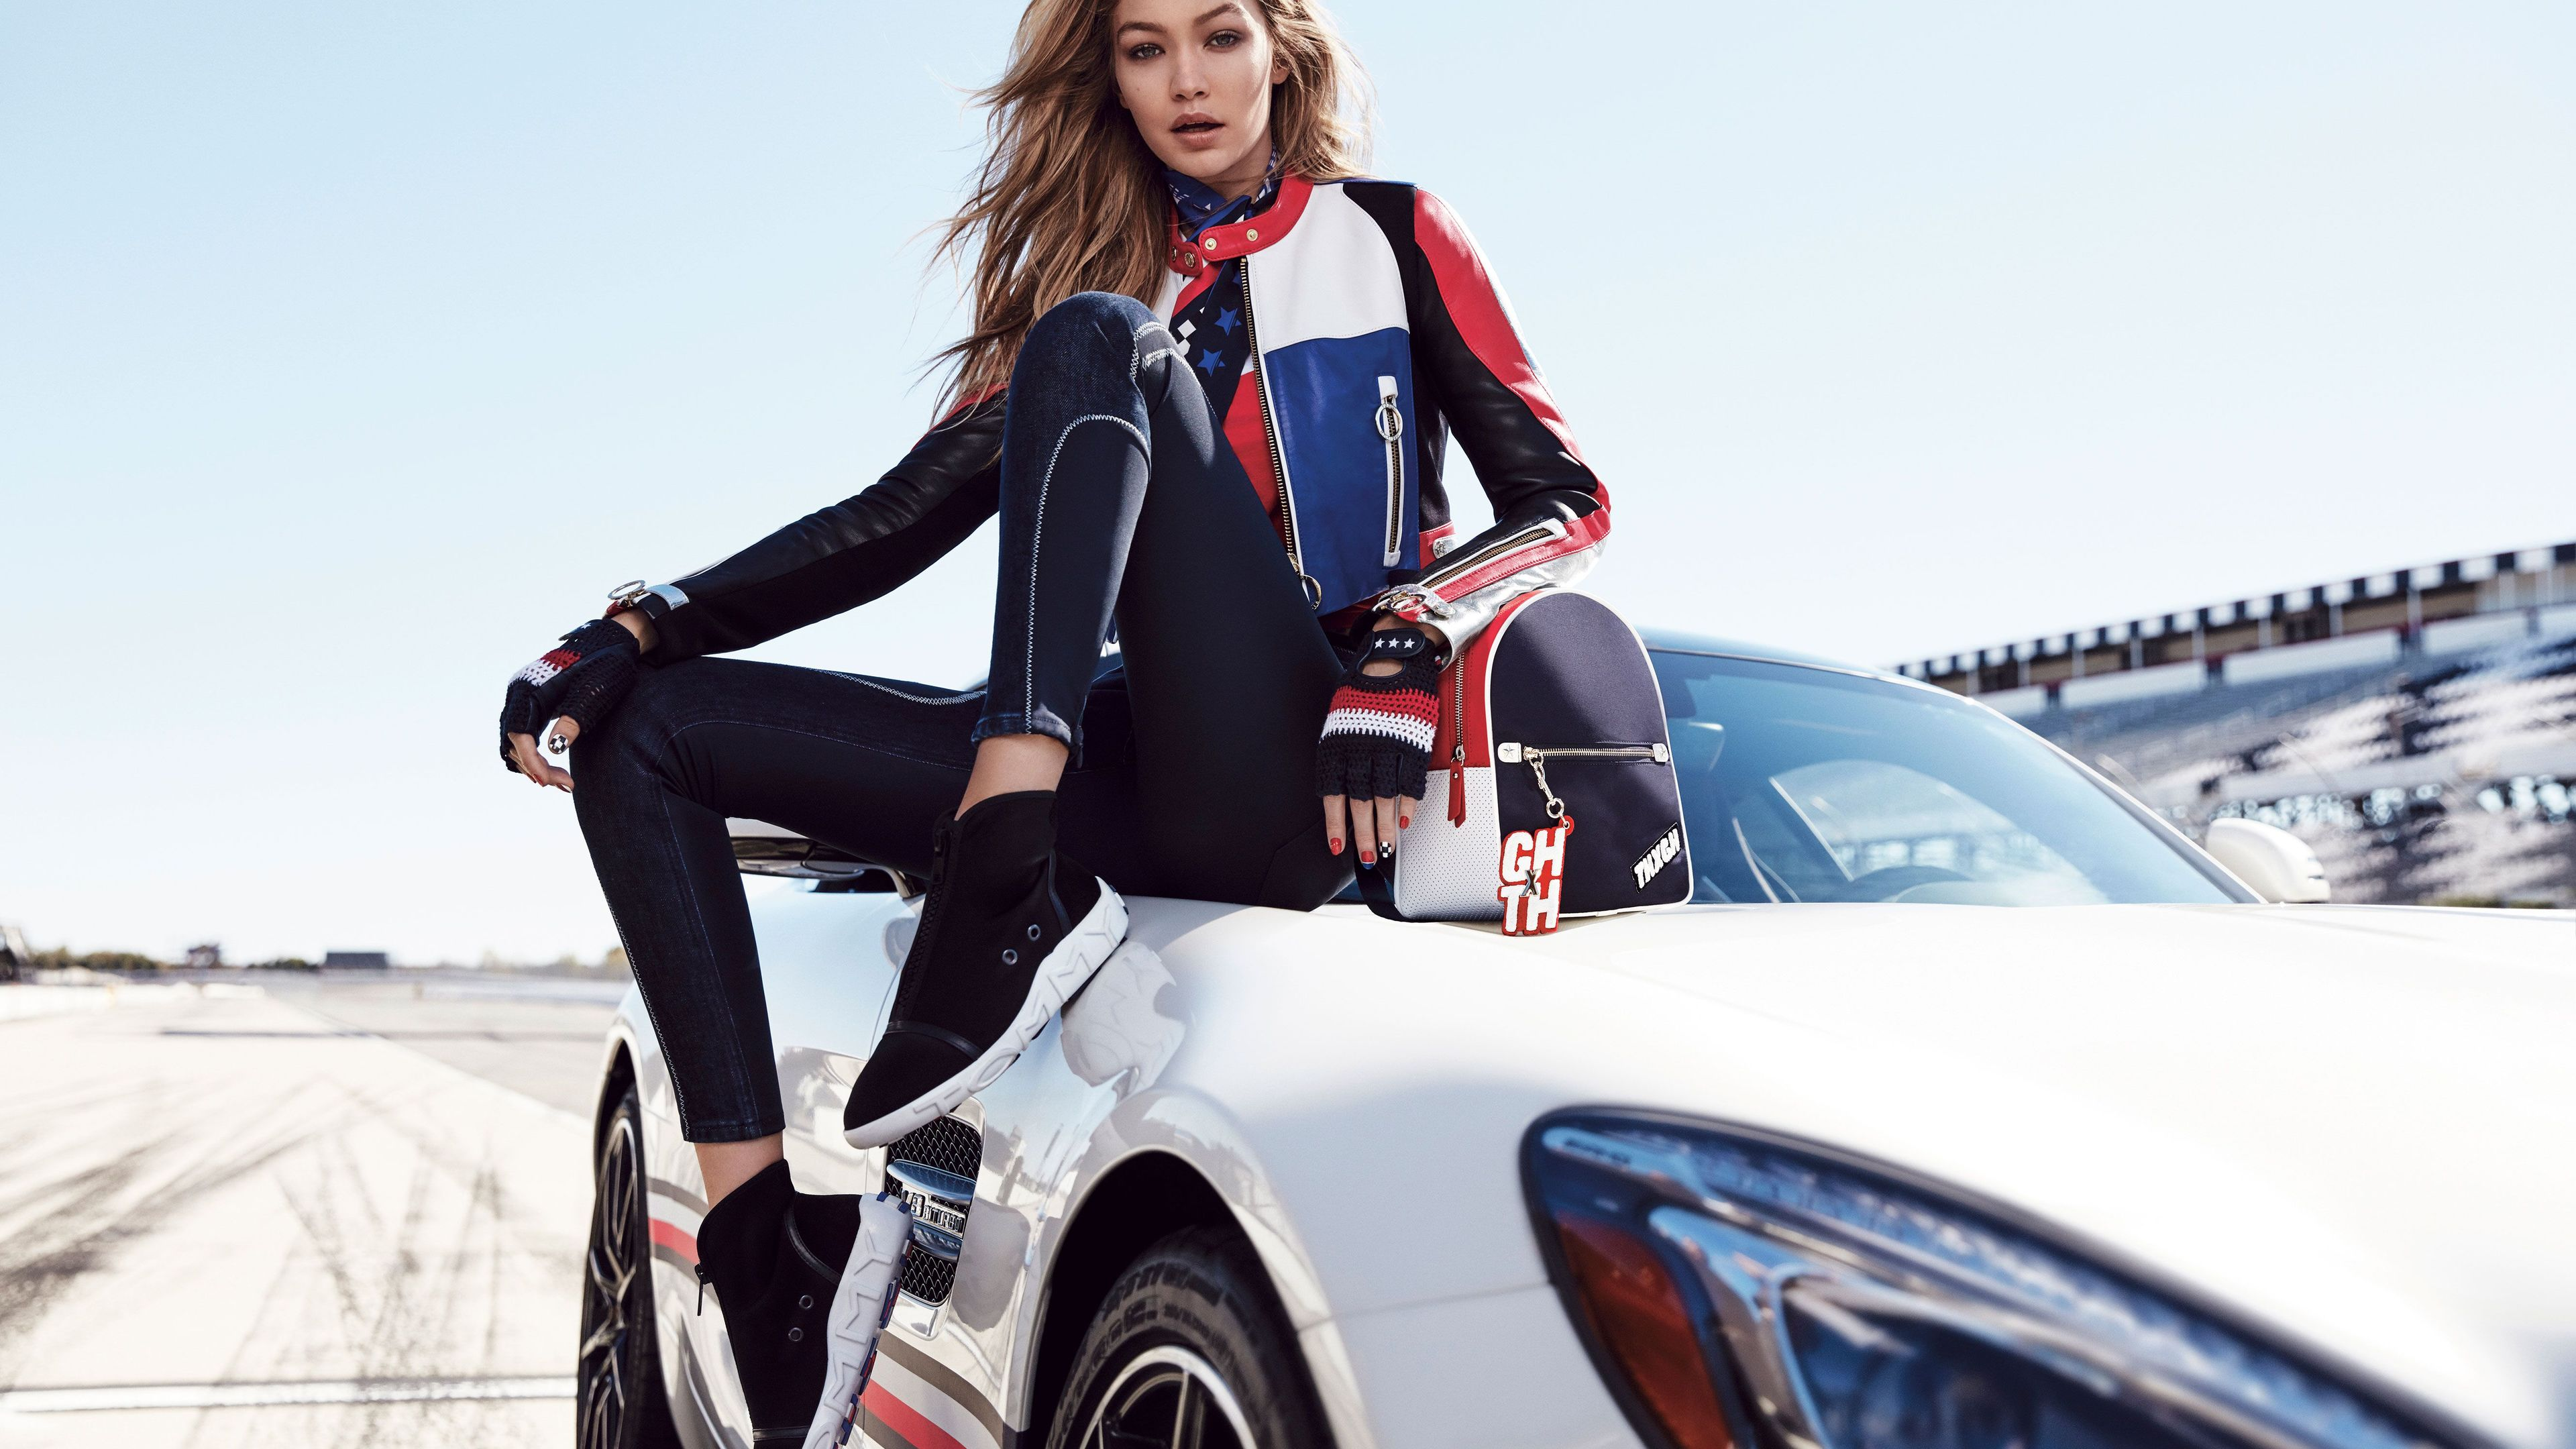 gigi hadid tommy hilfiger campaign 4k 5k 1536945608 - Gigi Hadid Tommy Hilfiger Campaign 4k 5k - model wallpapers, hd-wallpapers, girls wallpapers, gigi hadid wallpapers, celebrities wallpapers, 5k wallpapers, 4k-wallpapers